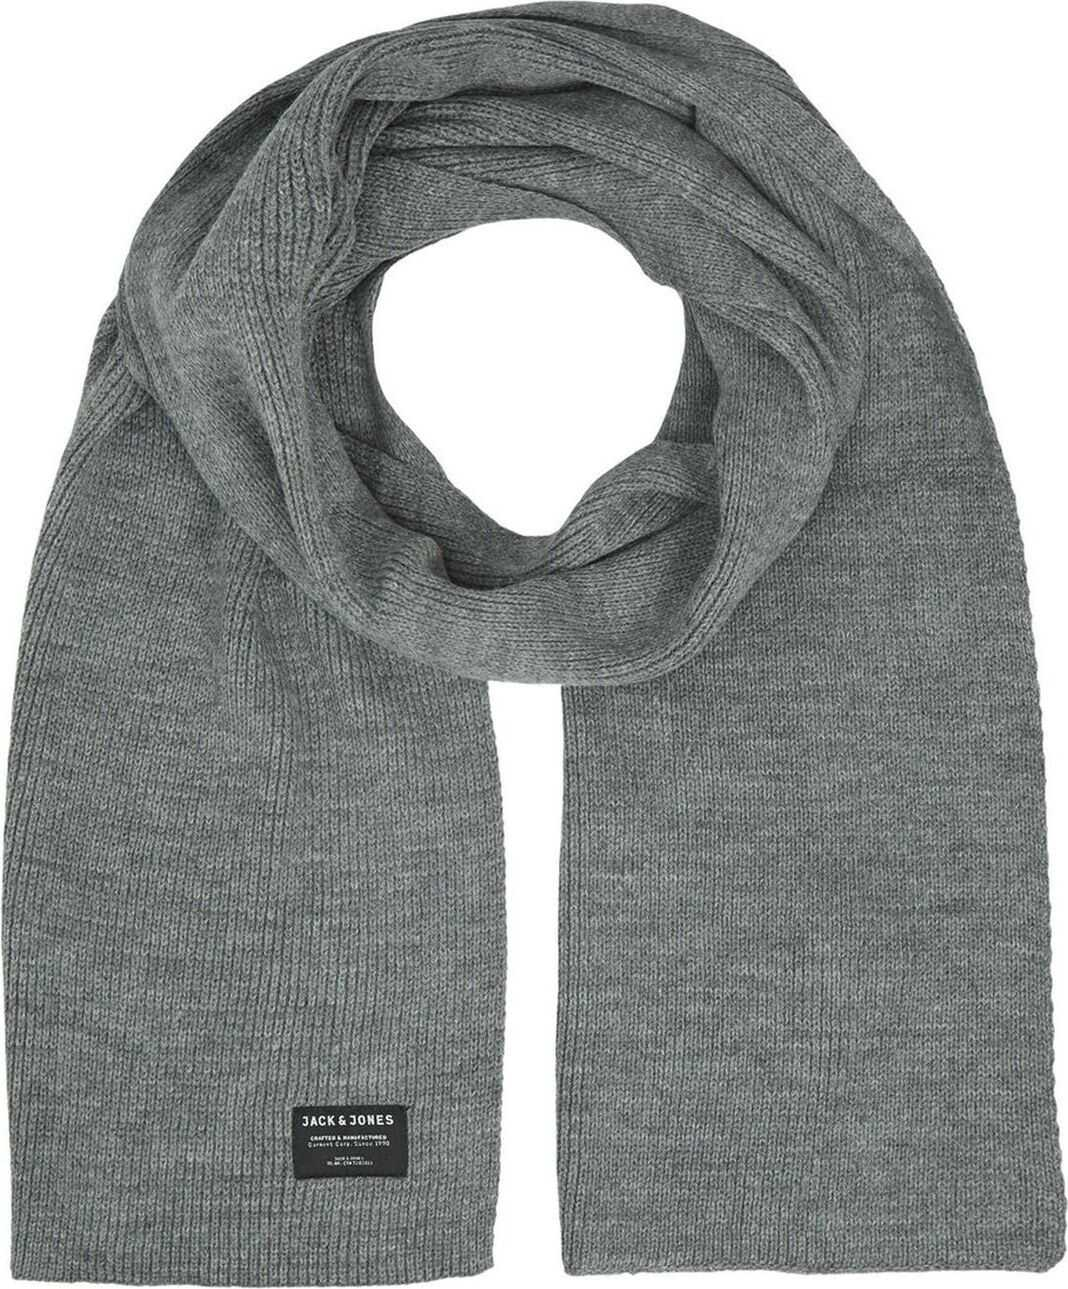 JACK & JONES 12098582Grey Acrylic Scarf GREY